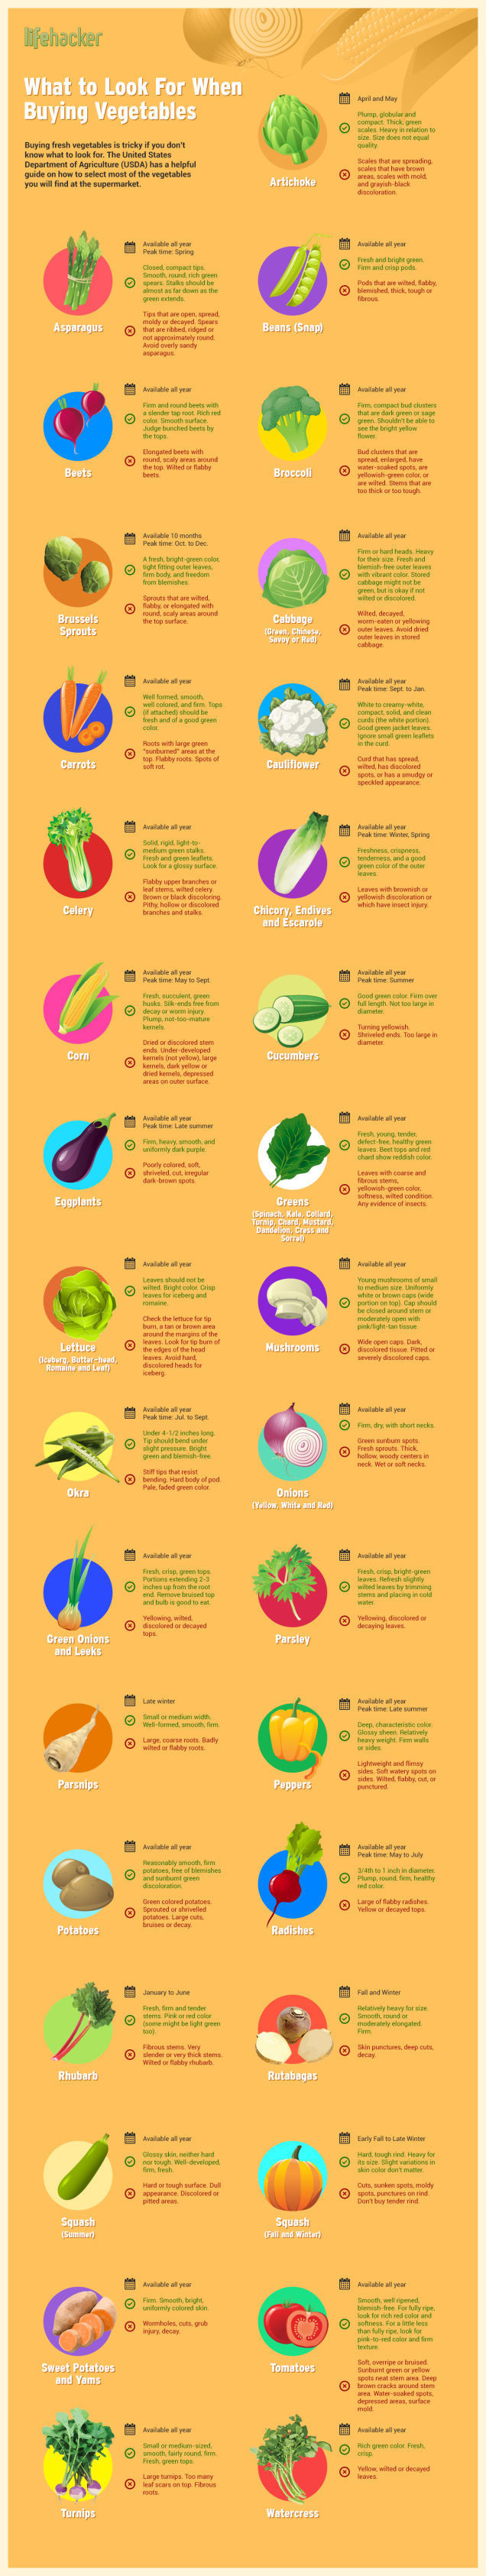 33 Tips When Buying Vegetables Infographic